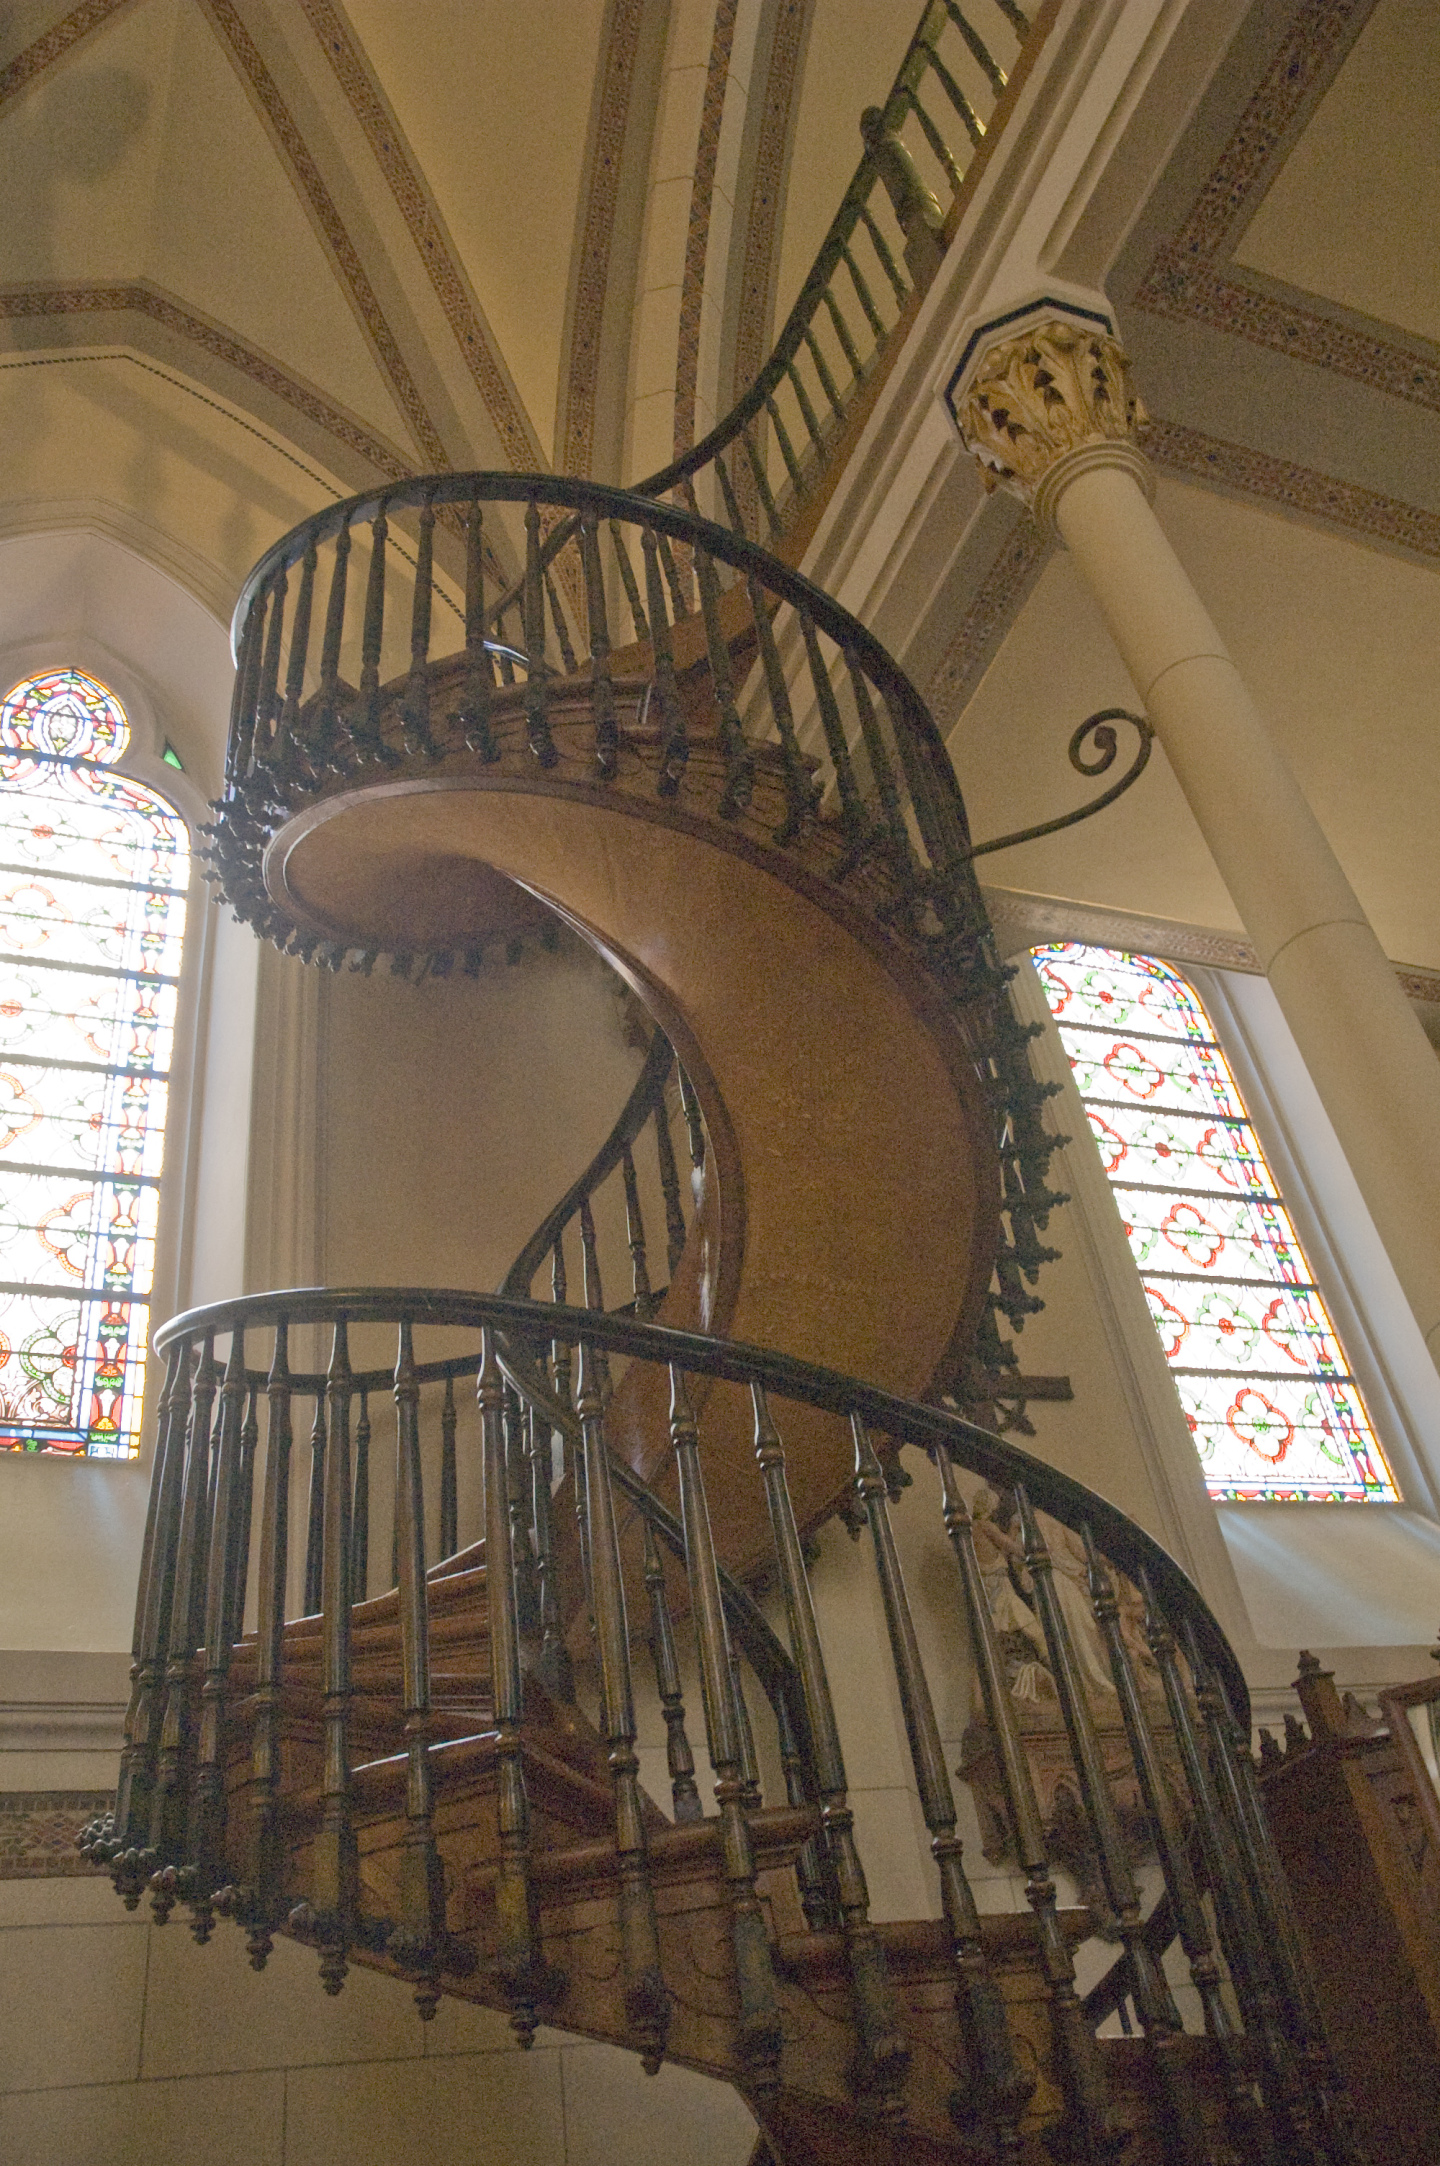 The staircase, which is around six meters high, takes two full turns over its axis until it reaches the choir. It was built without any nails or glue, and lacks any kind of central support. The construction itself is said to be impossible.